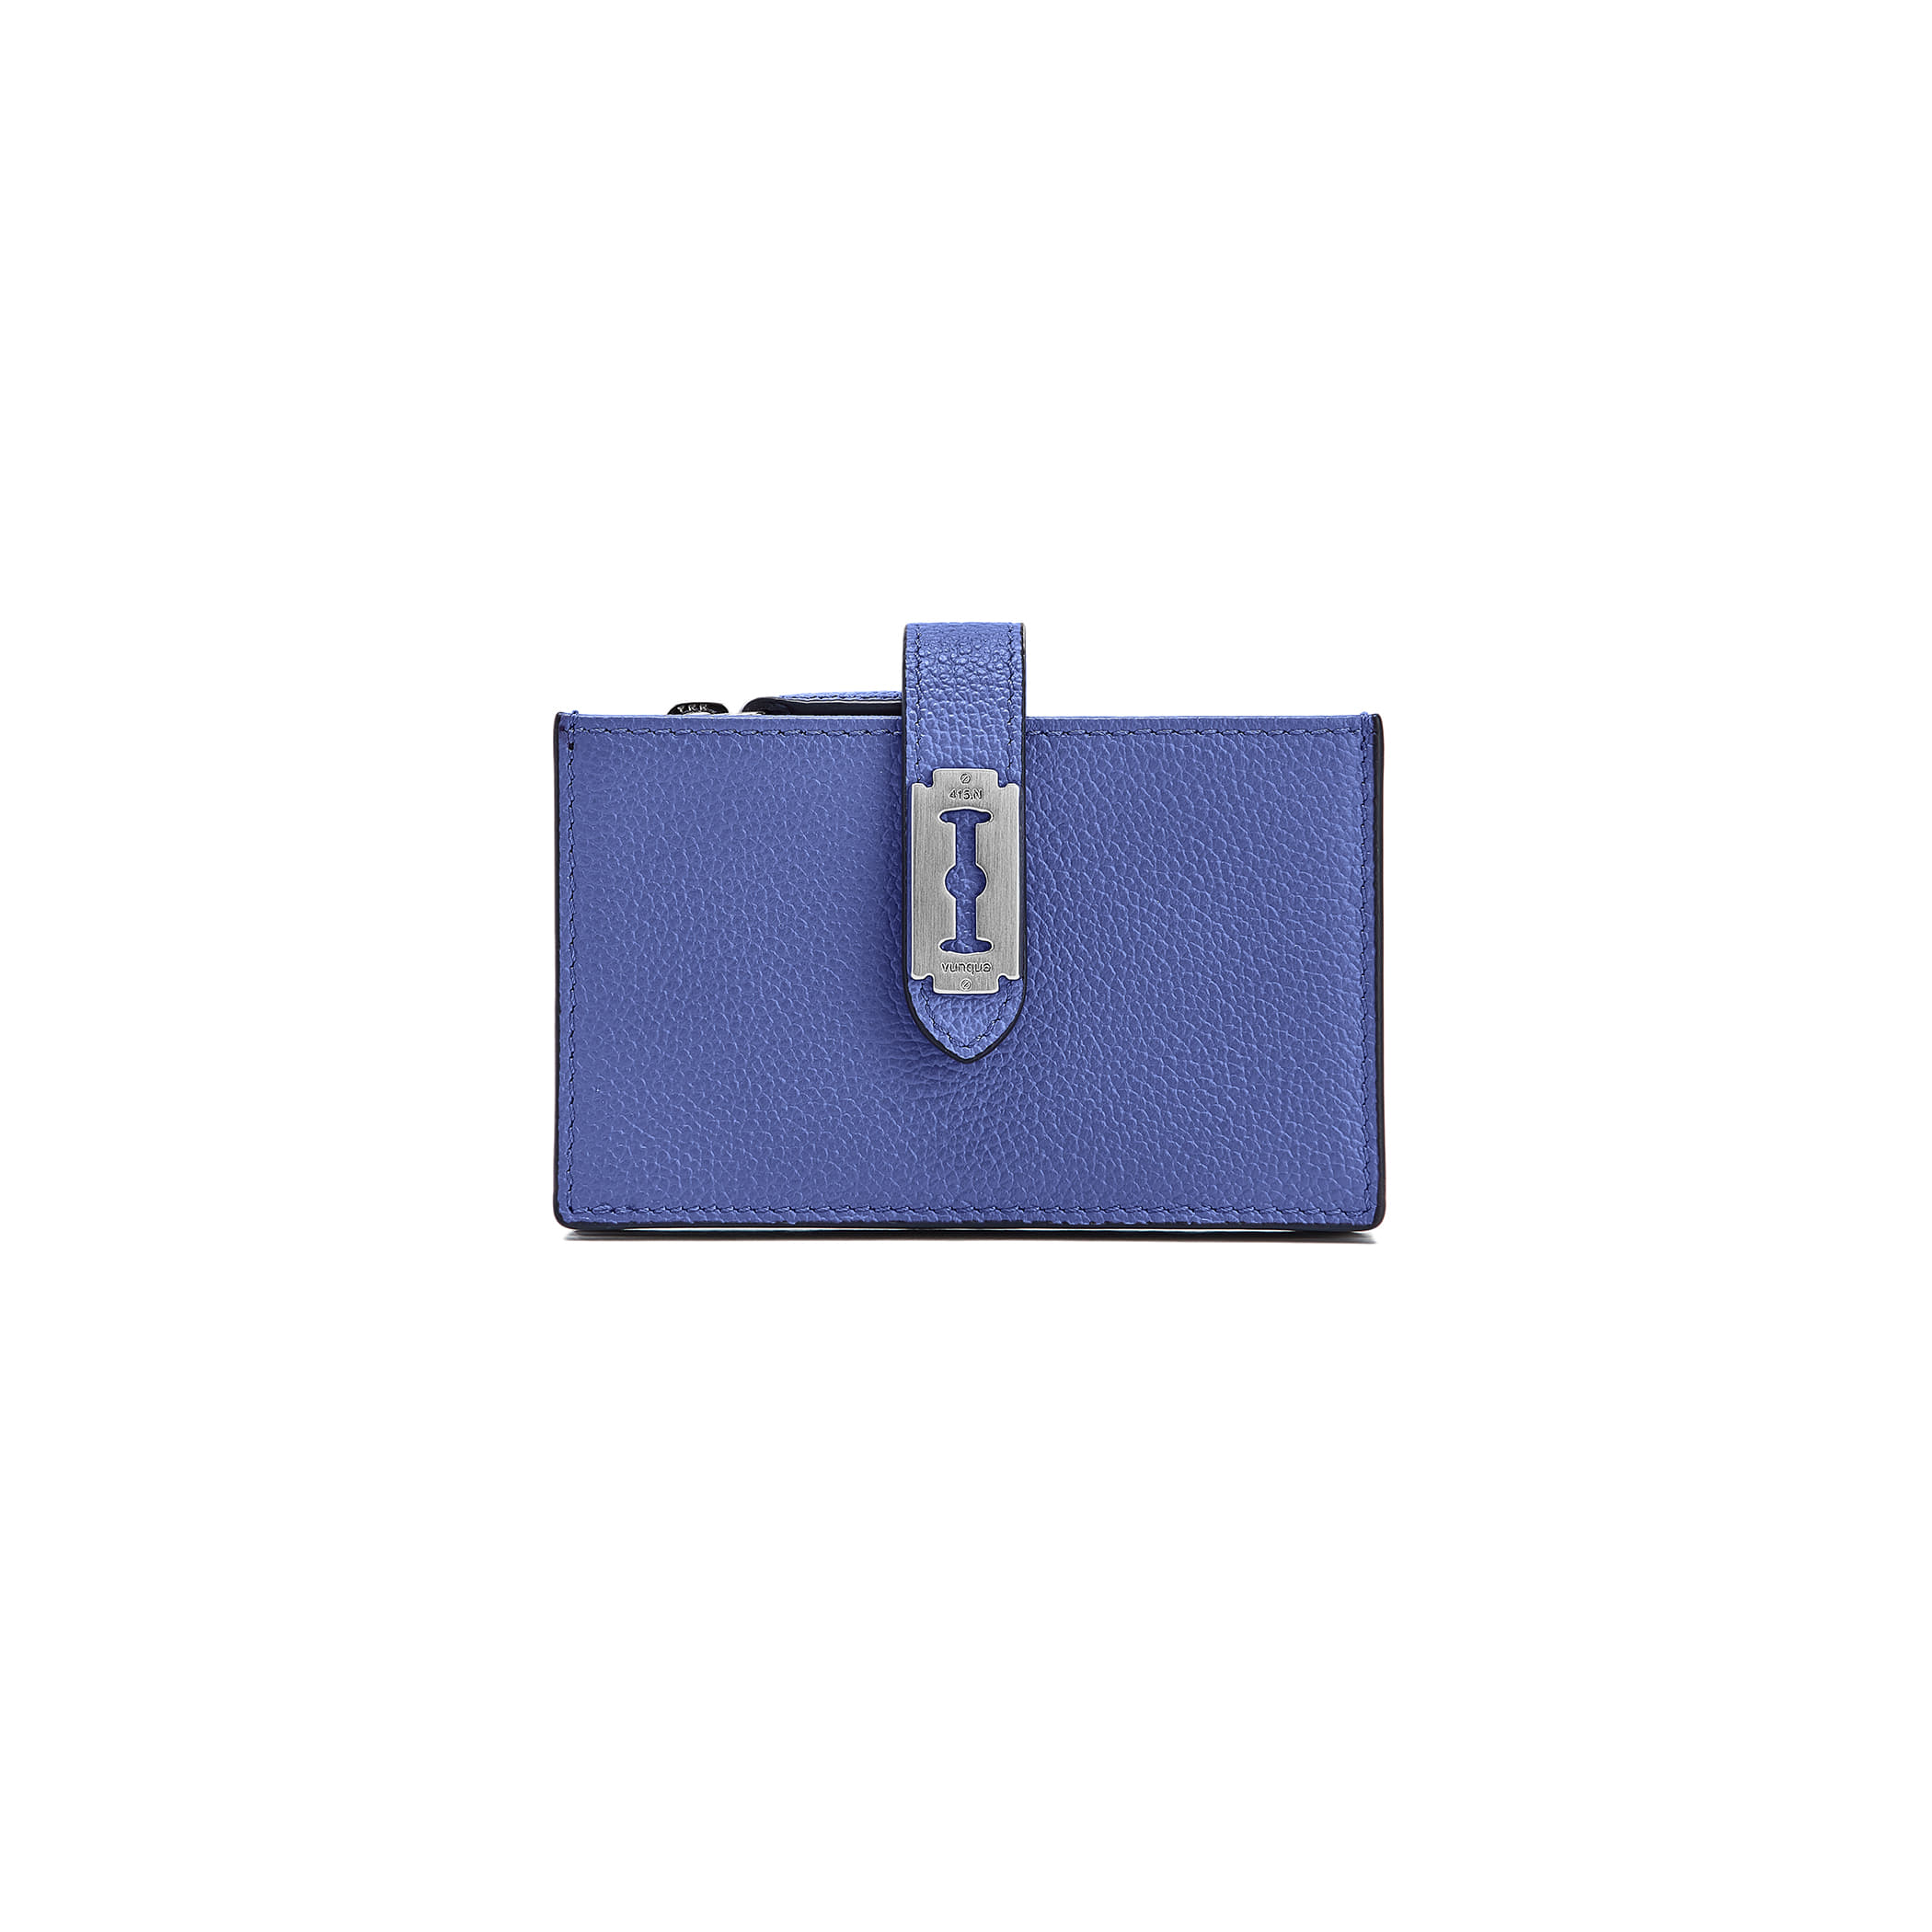 Magpie Accordion Card Wallet (맥파이 아코디언 카드지갑) Calm blue